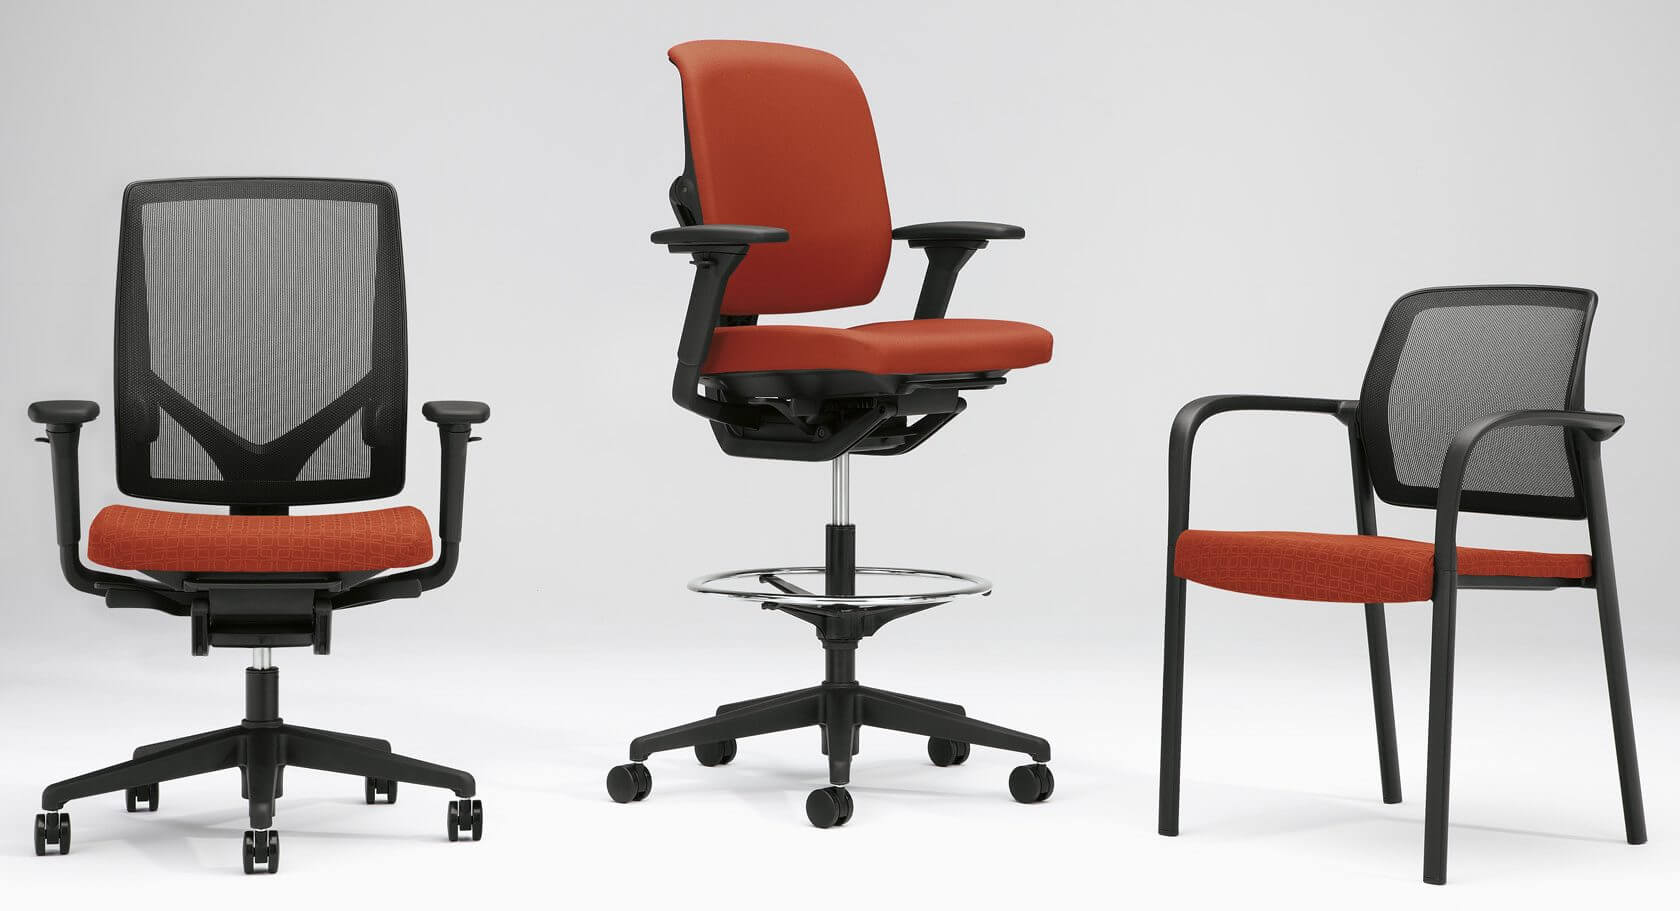 desk chair youtube slipcovers for chairs with arms office all makes equipment co